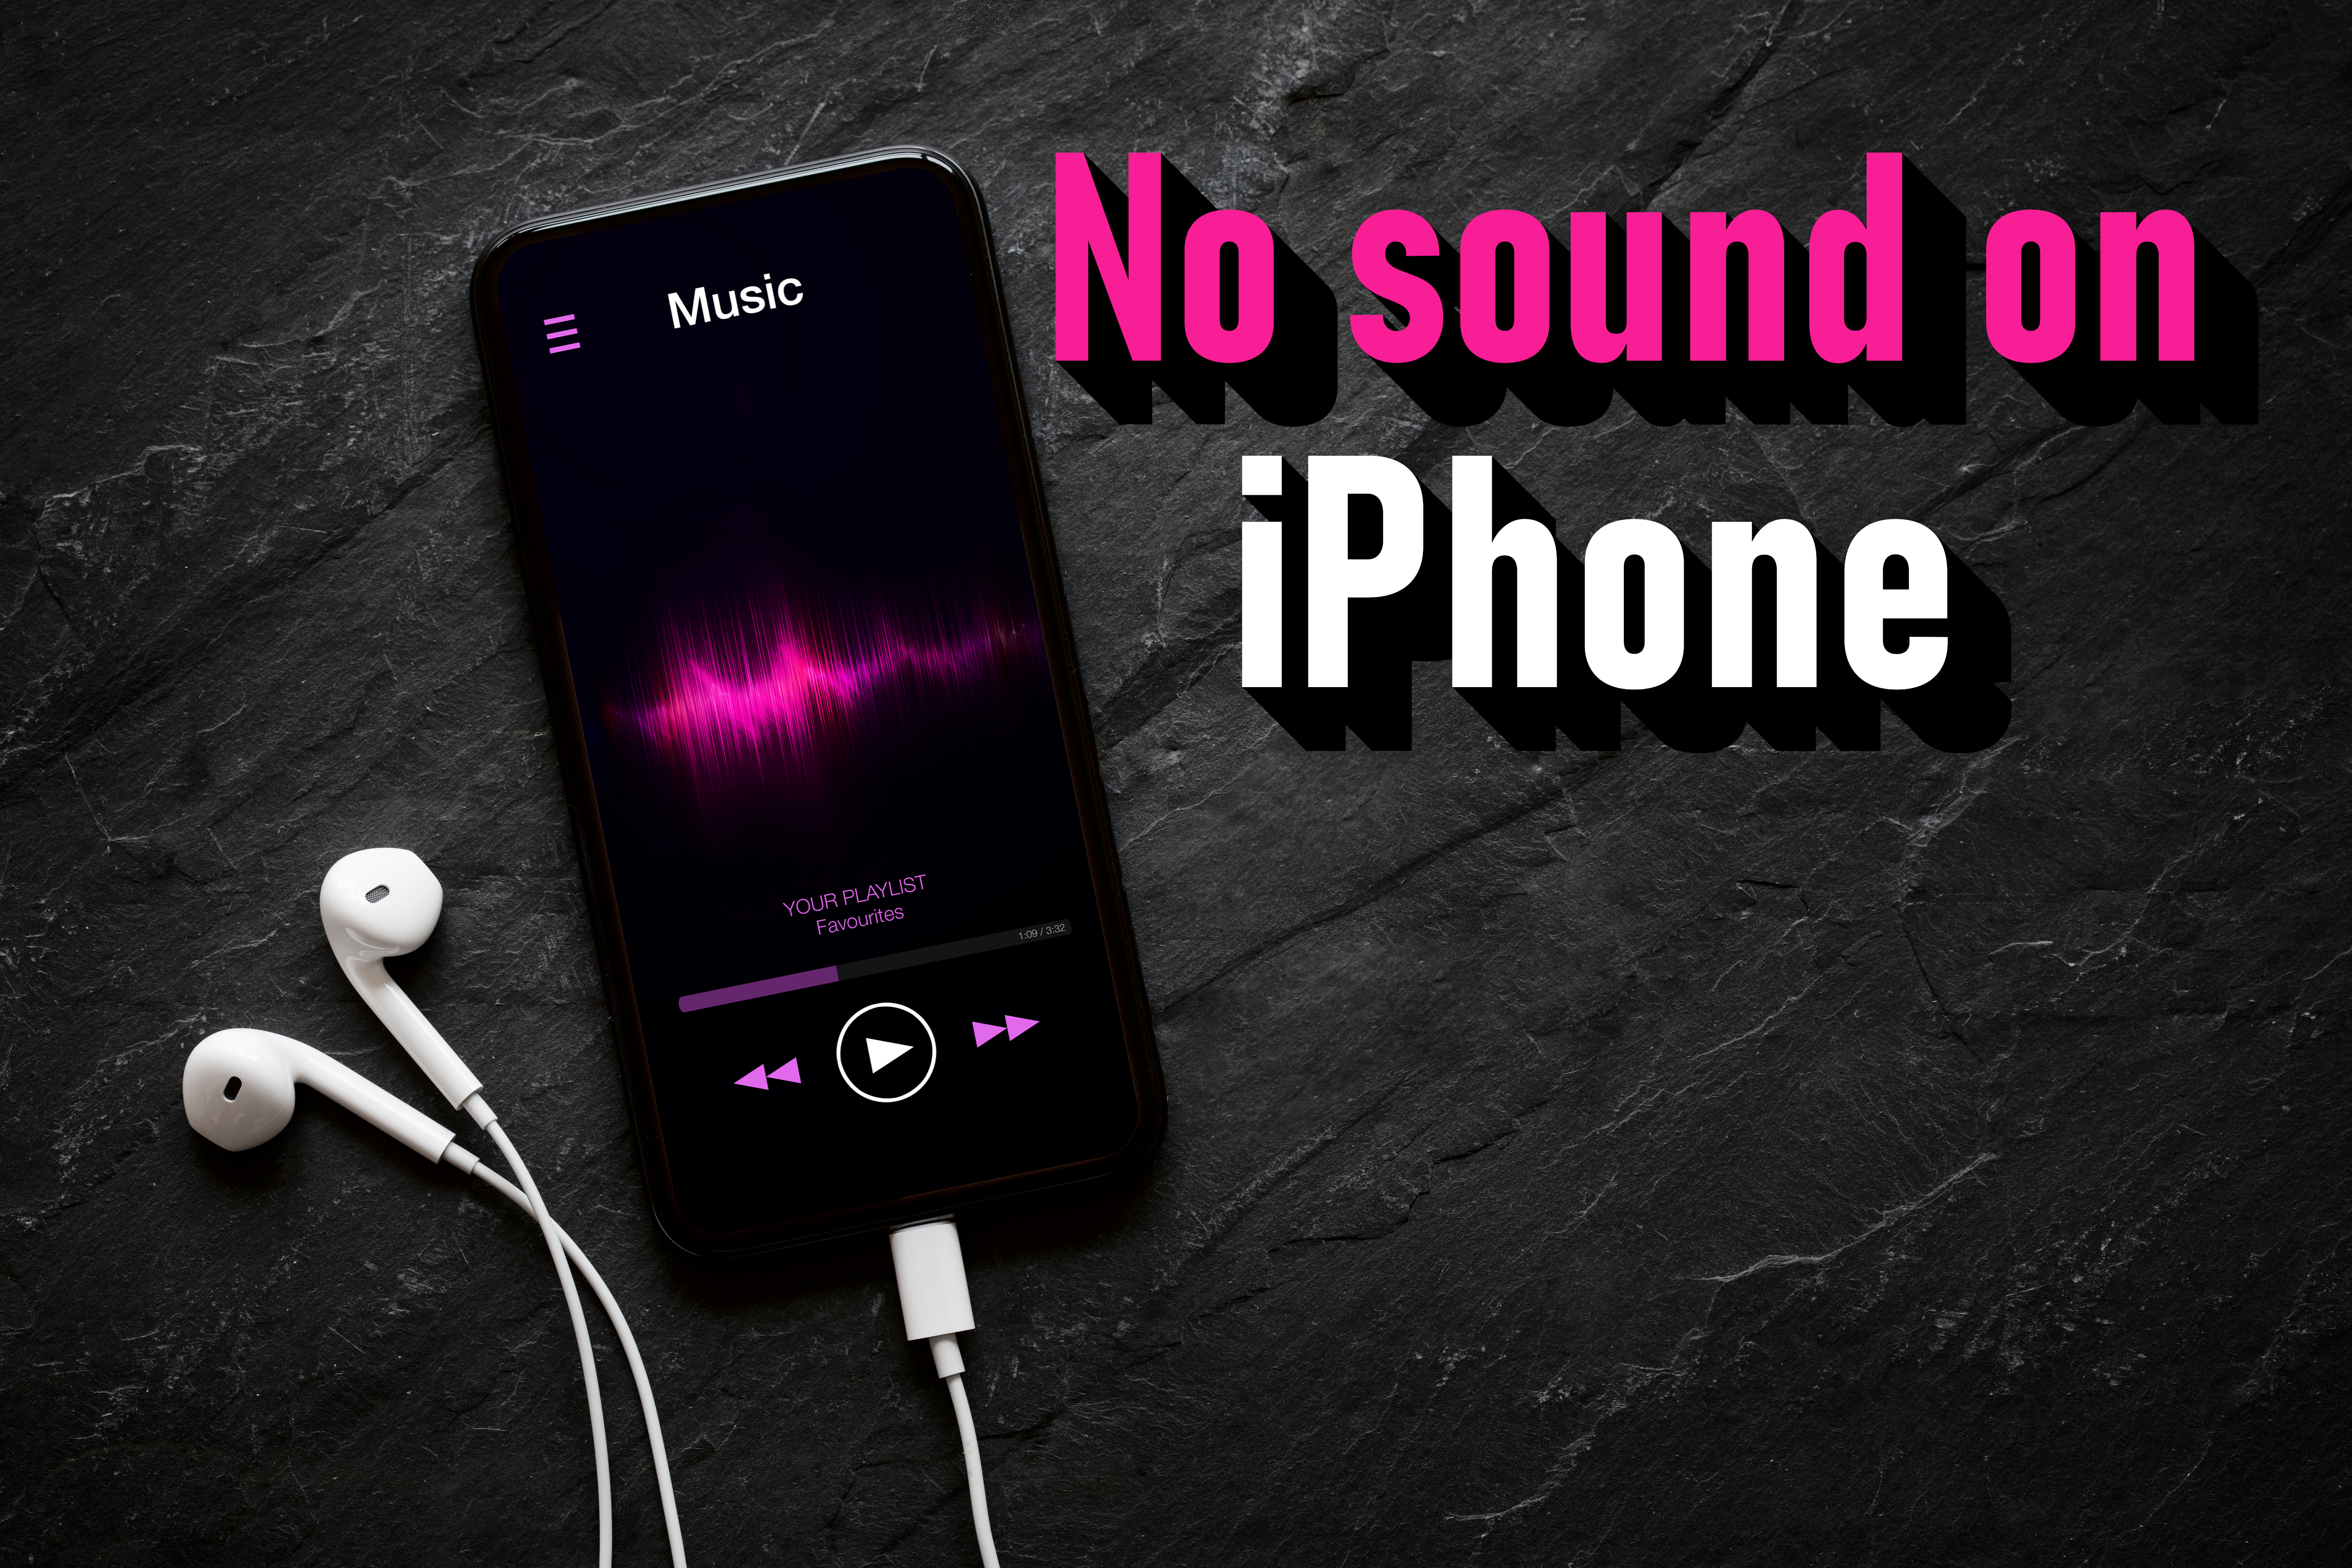 No sound on iPhone